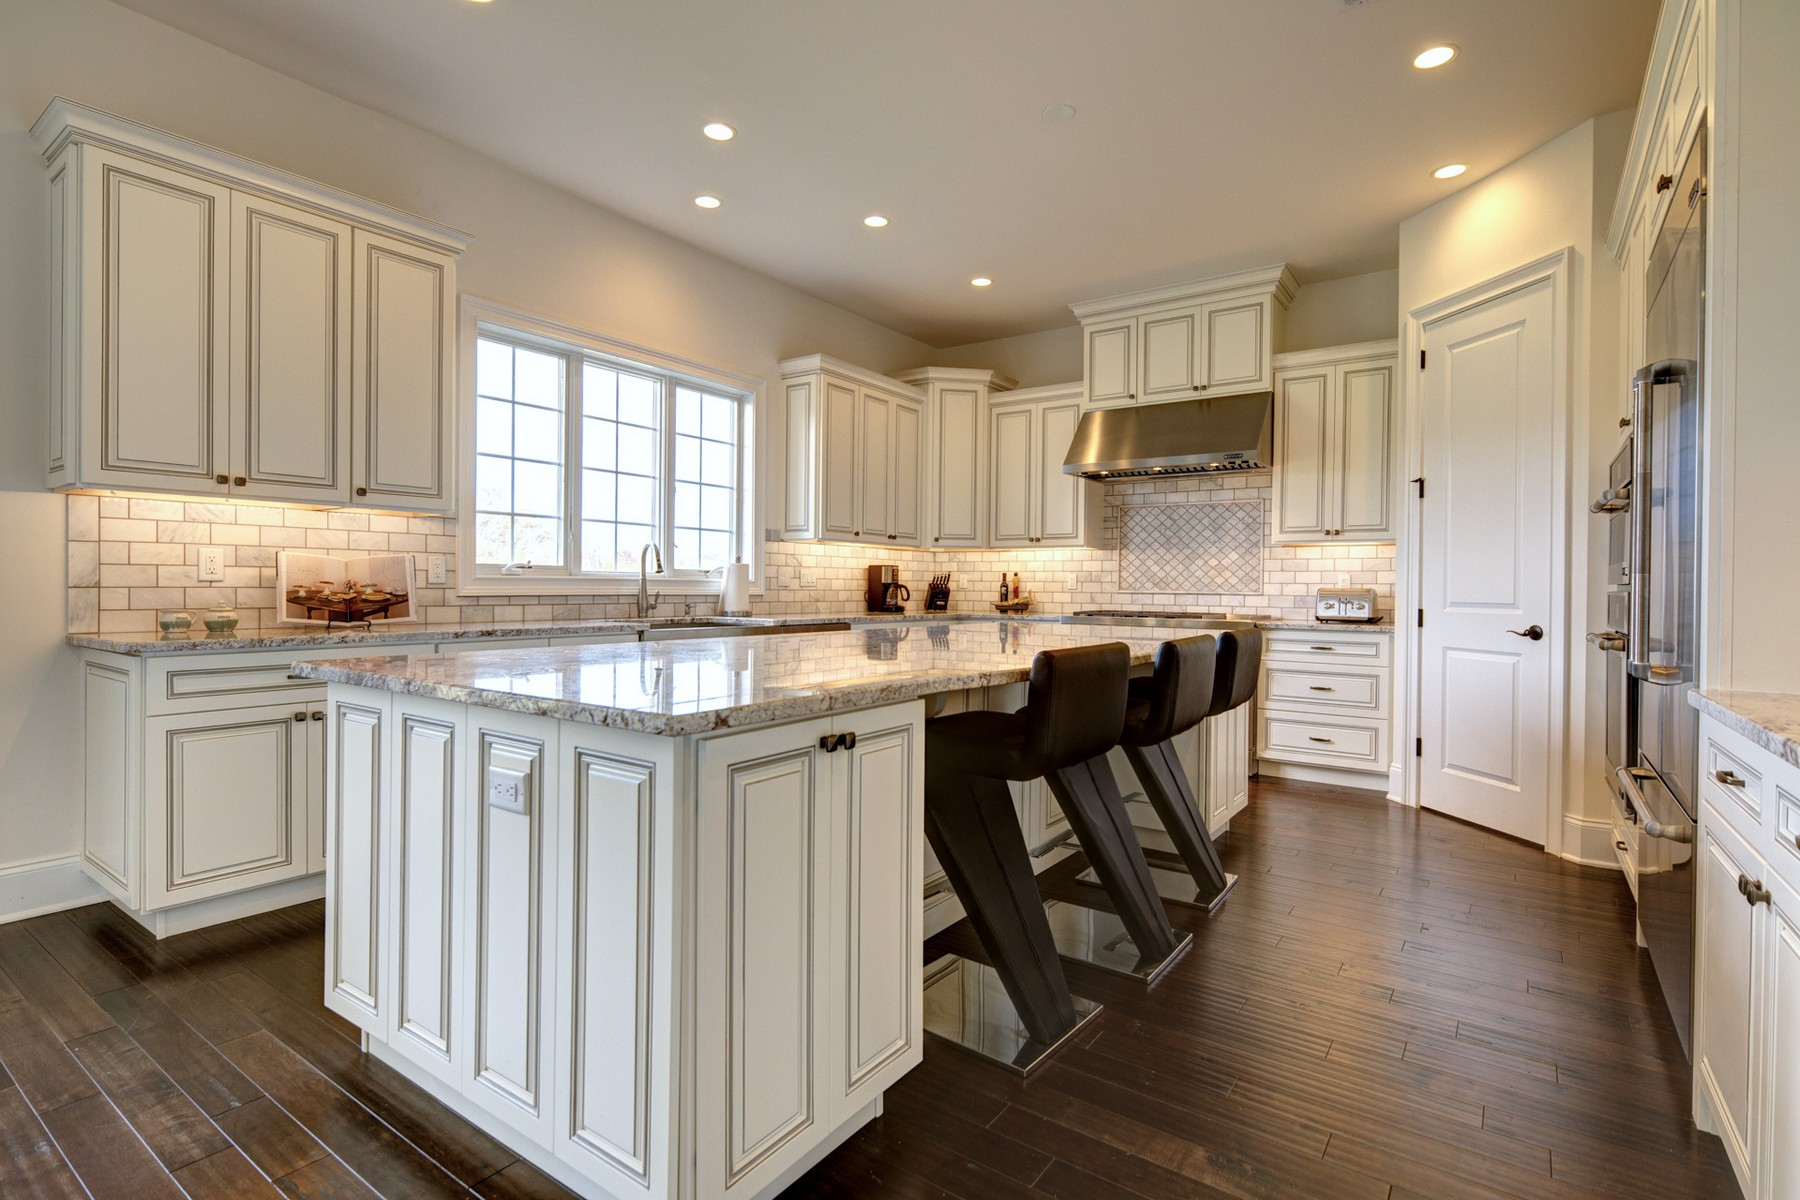 Single Family Home for Sale at The Reserve at Holmdel - Immediate Occupancy 4 Paddington Lane, Holmdel, New Jersey 07733 United States